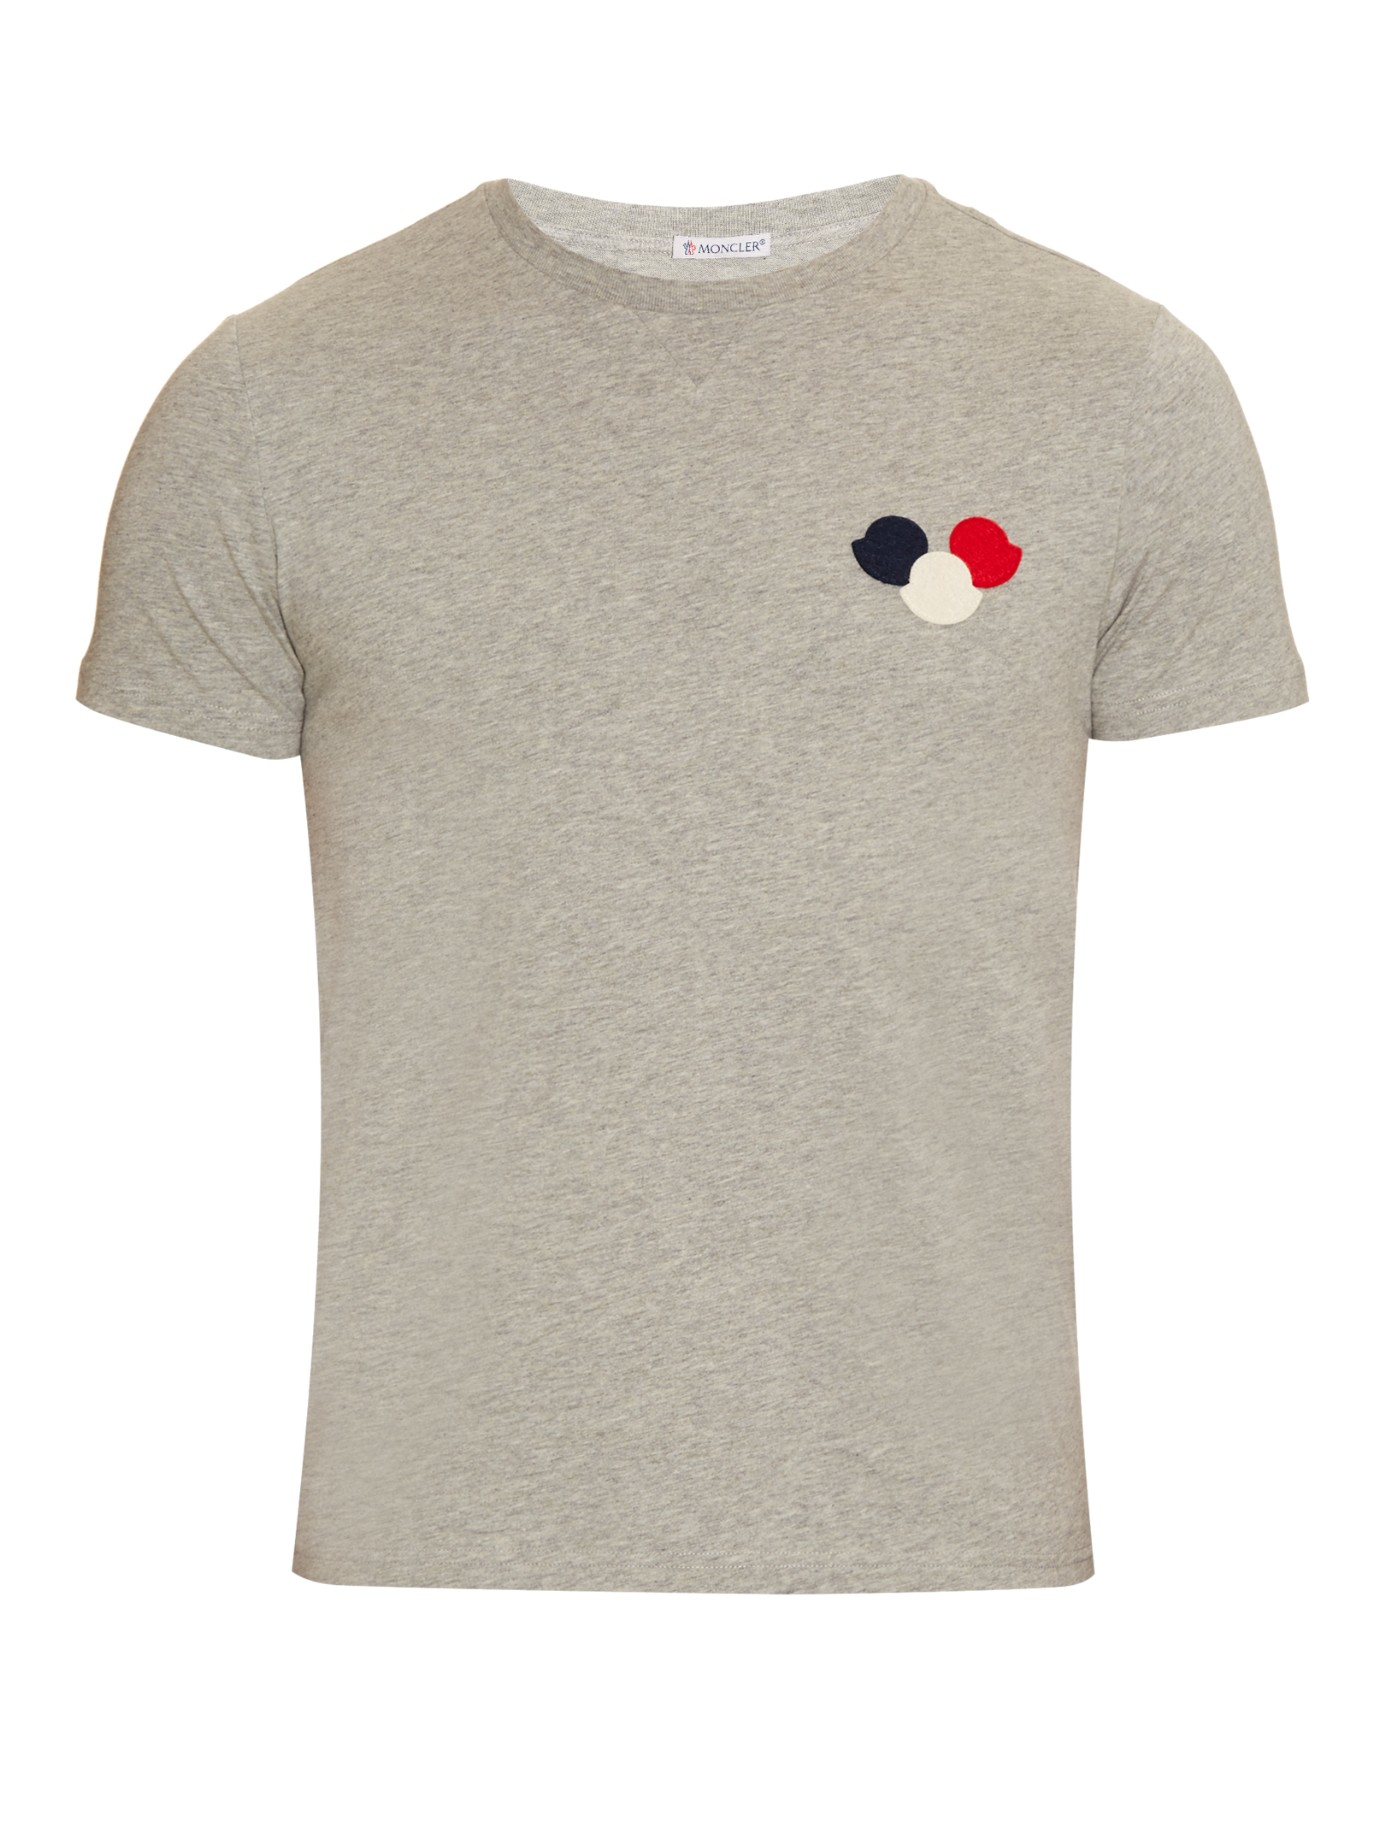 lyst moncler logo appliqu cotton t shirt in gray for men. Black Bedroom Furniture Sets. Home Design Ideas